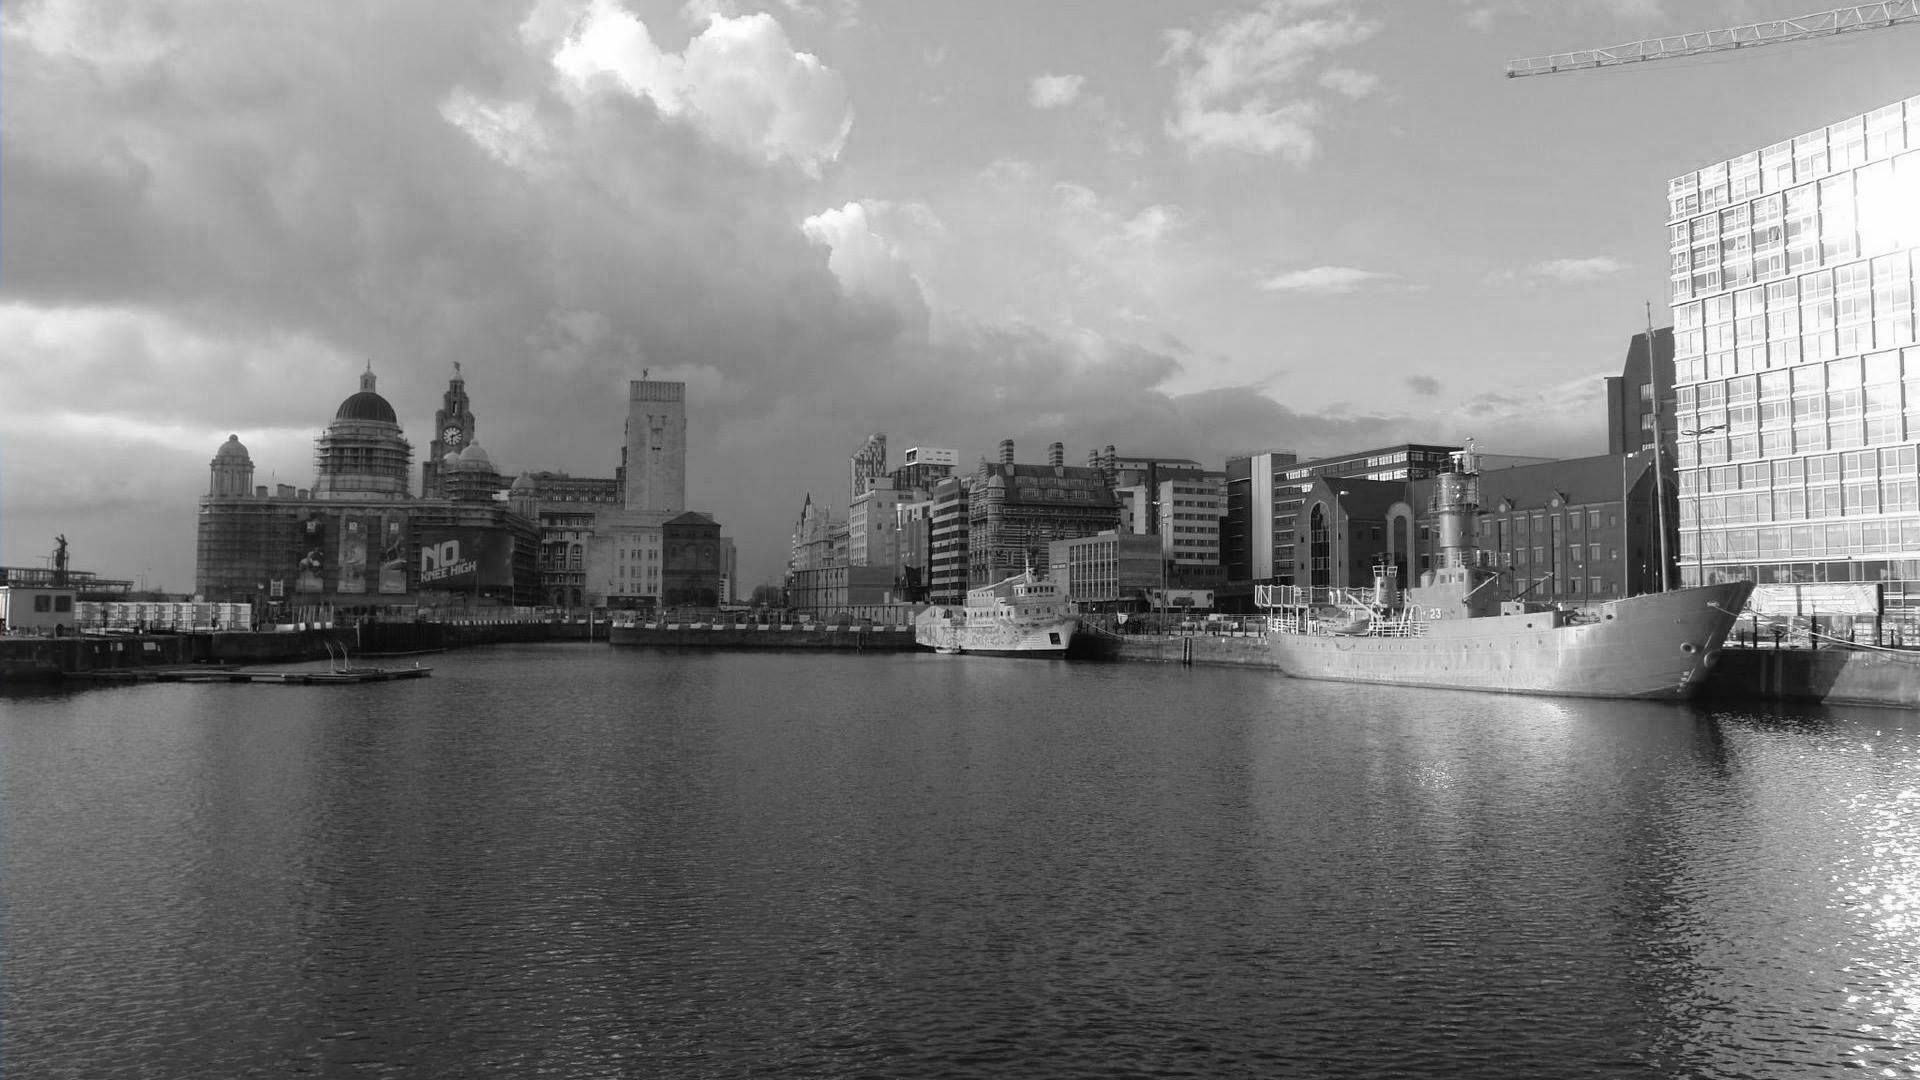 Liverpool docks black and white.